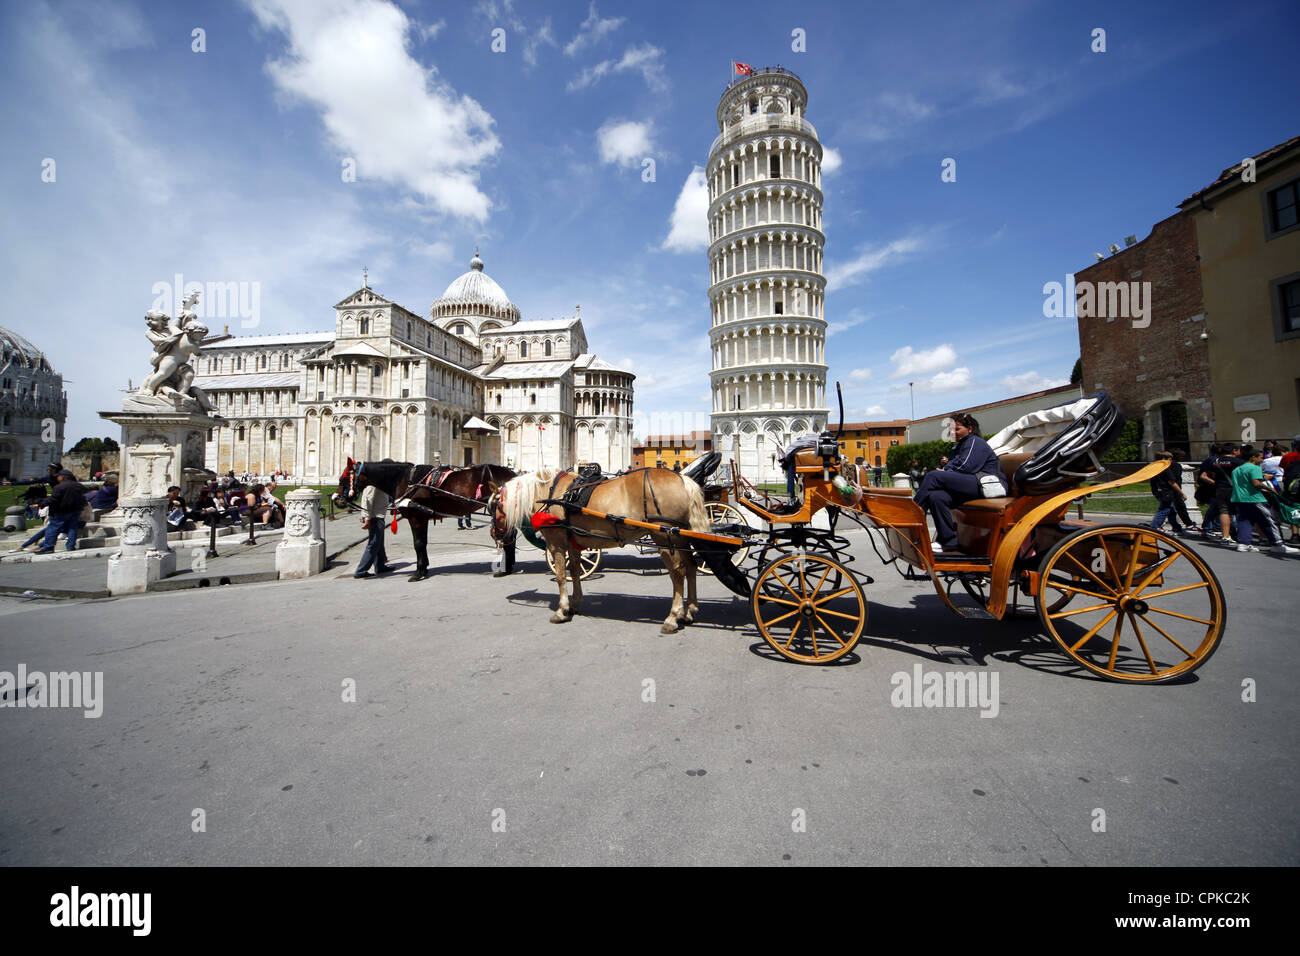 HORSE CARRIAGE ST MARY'S CATHEDRAL & LEANING TOWER PISA TUSCANY ITALY 08 May 2012 - Stock Image